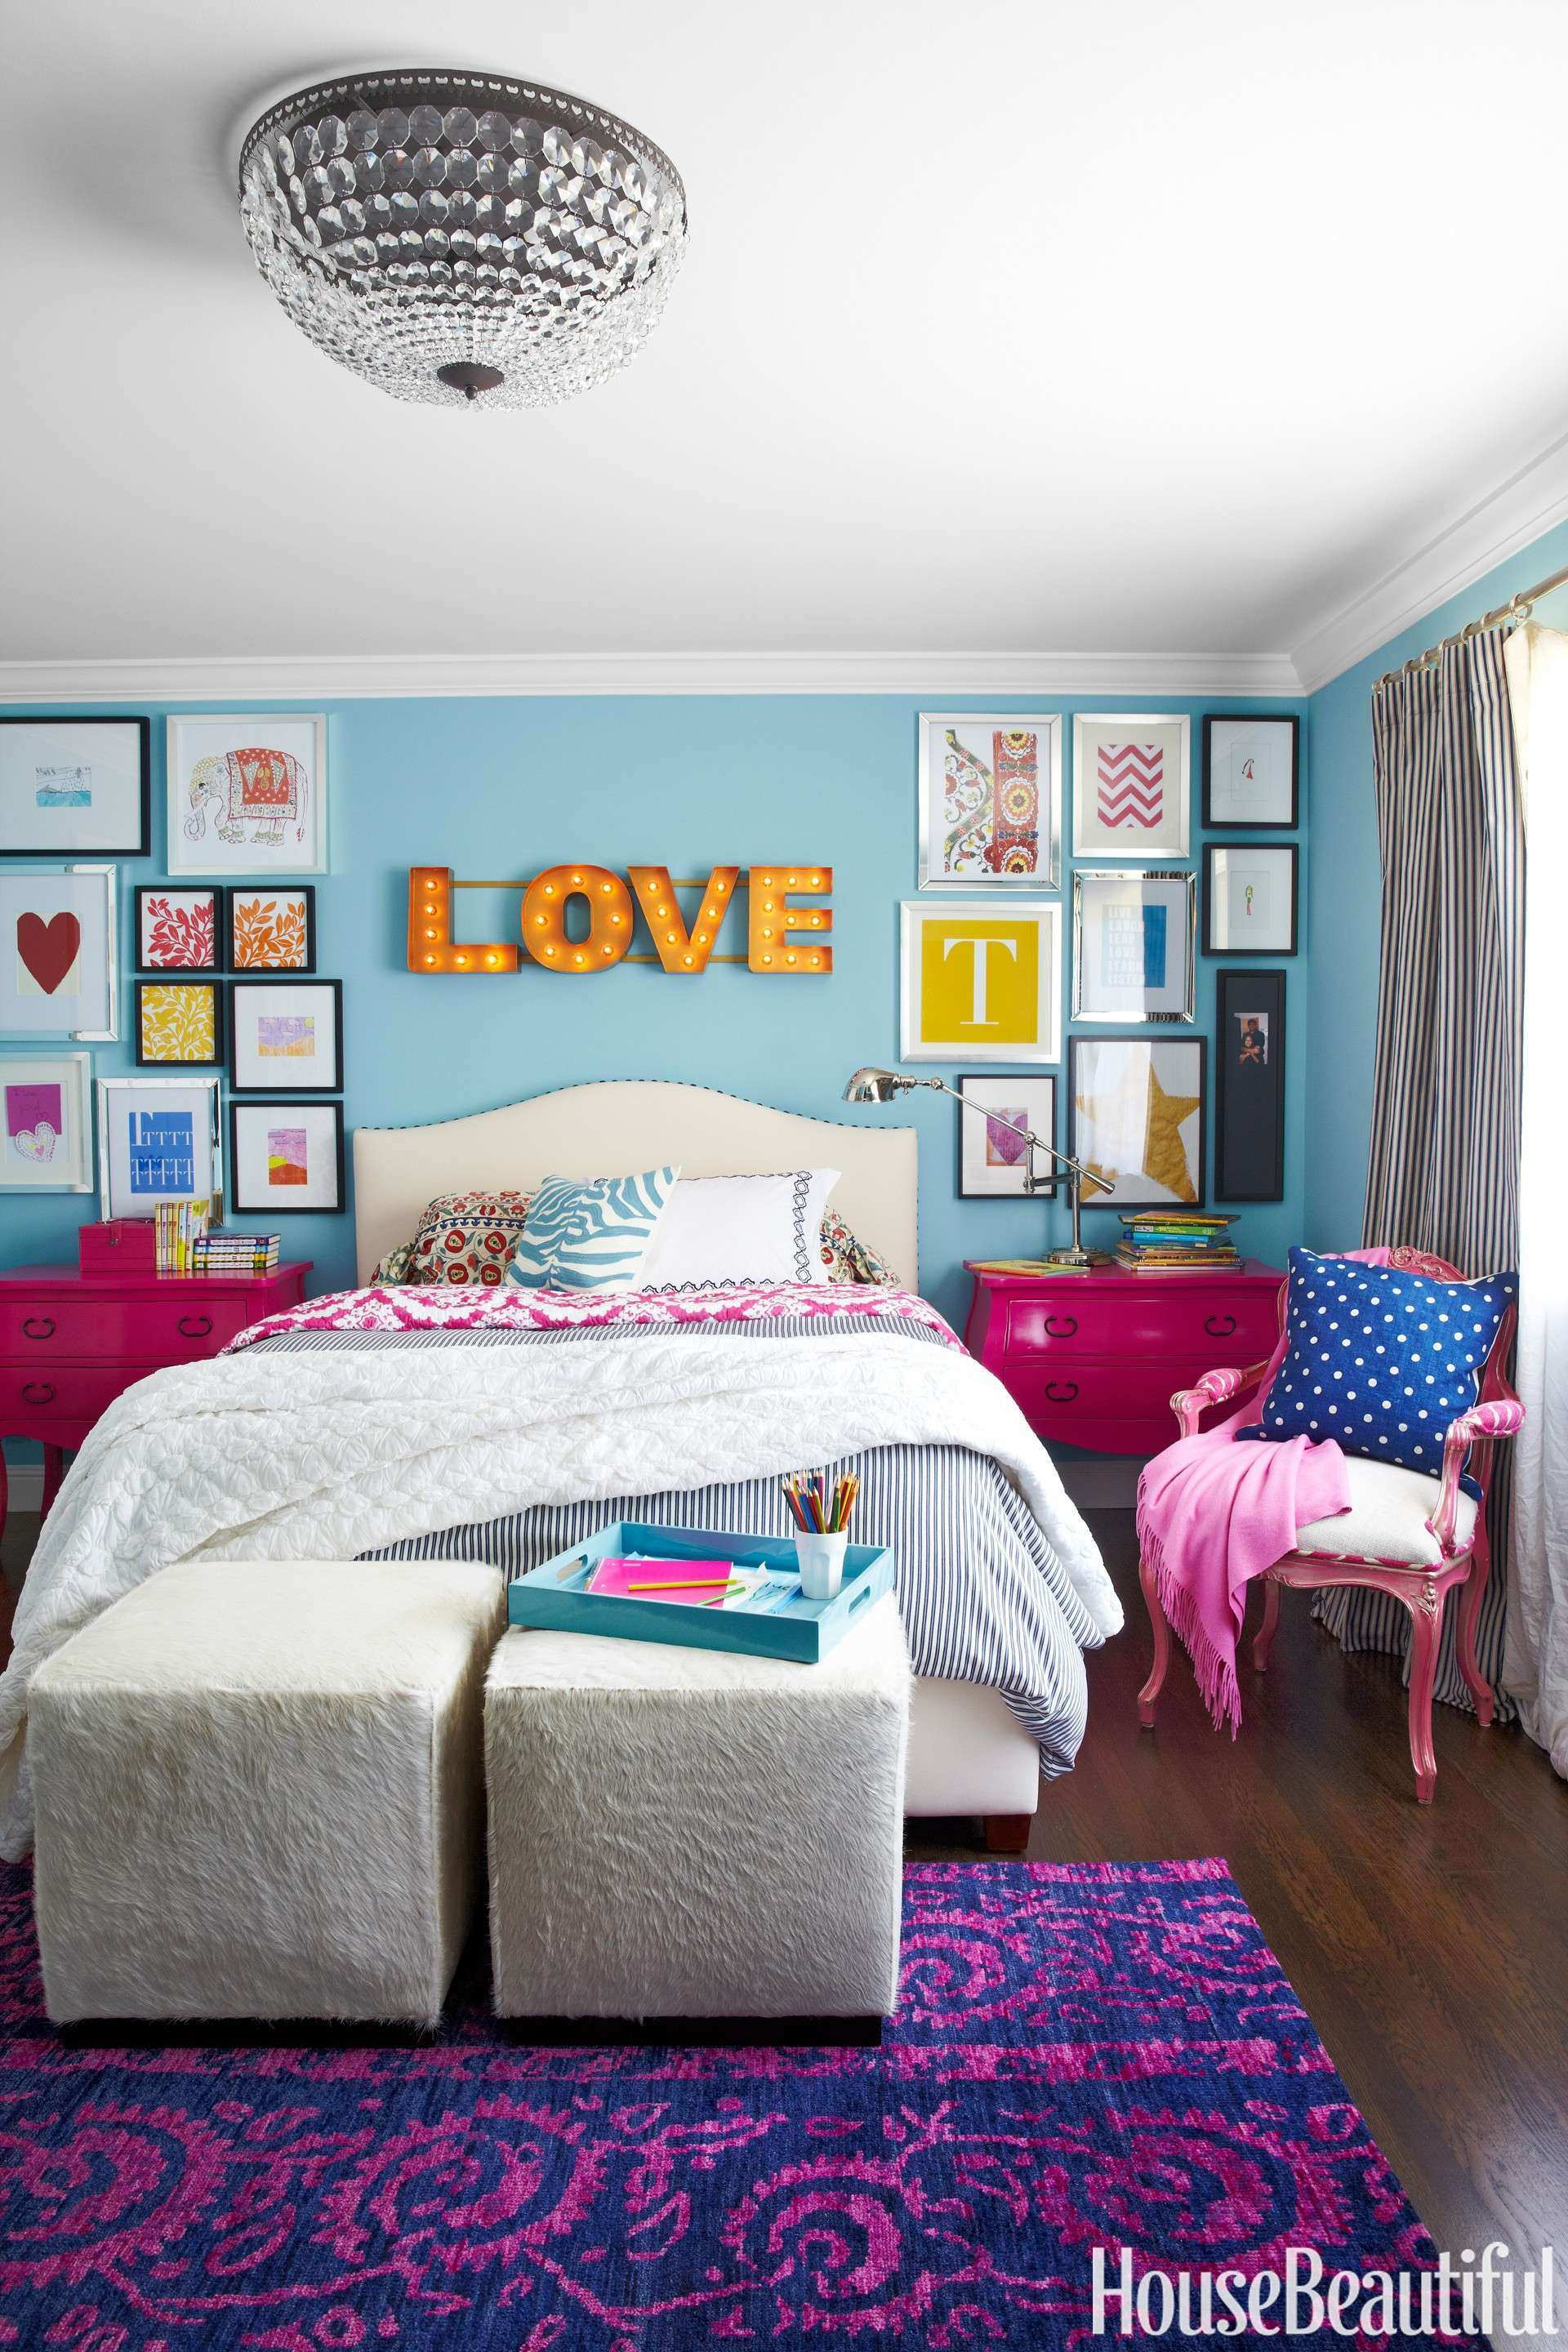 Home Wall Paint Colors Gorgeous Design Ideas Hbx Gallery Wall Kids